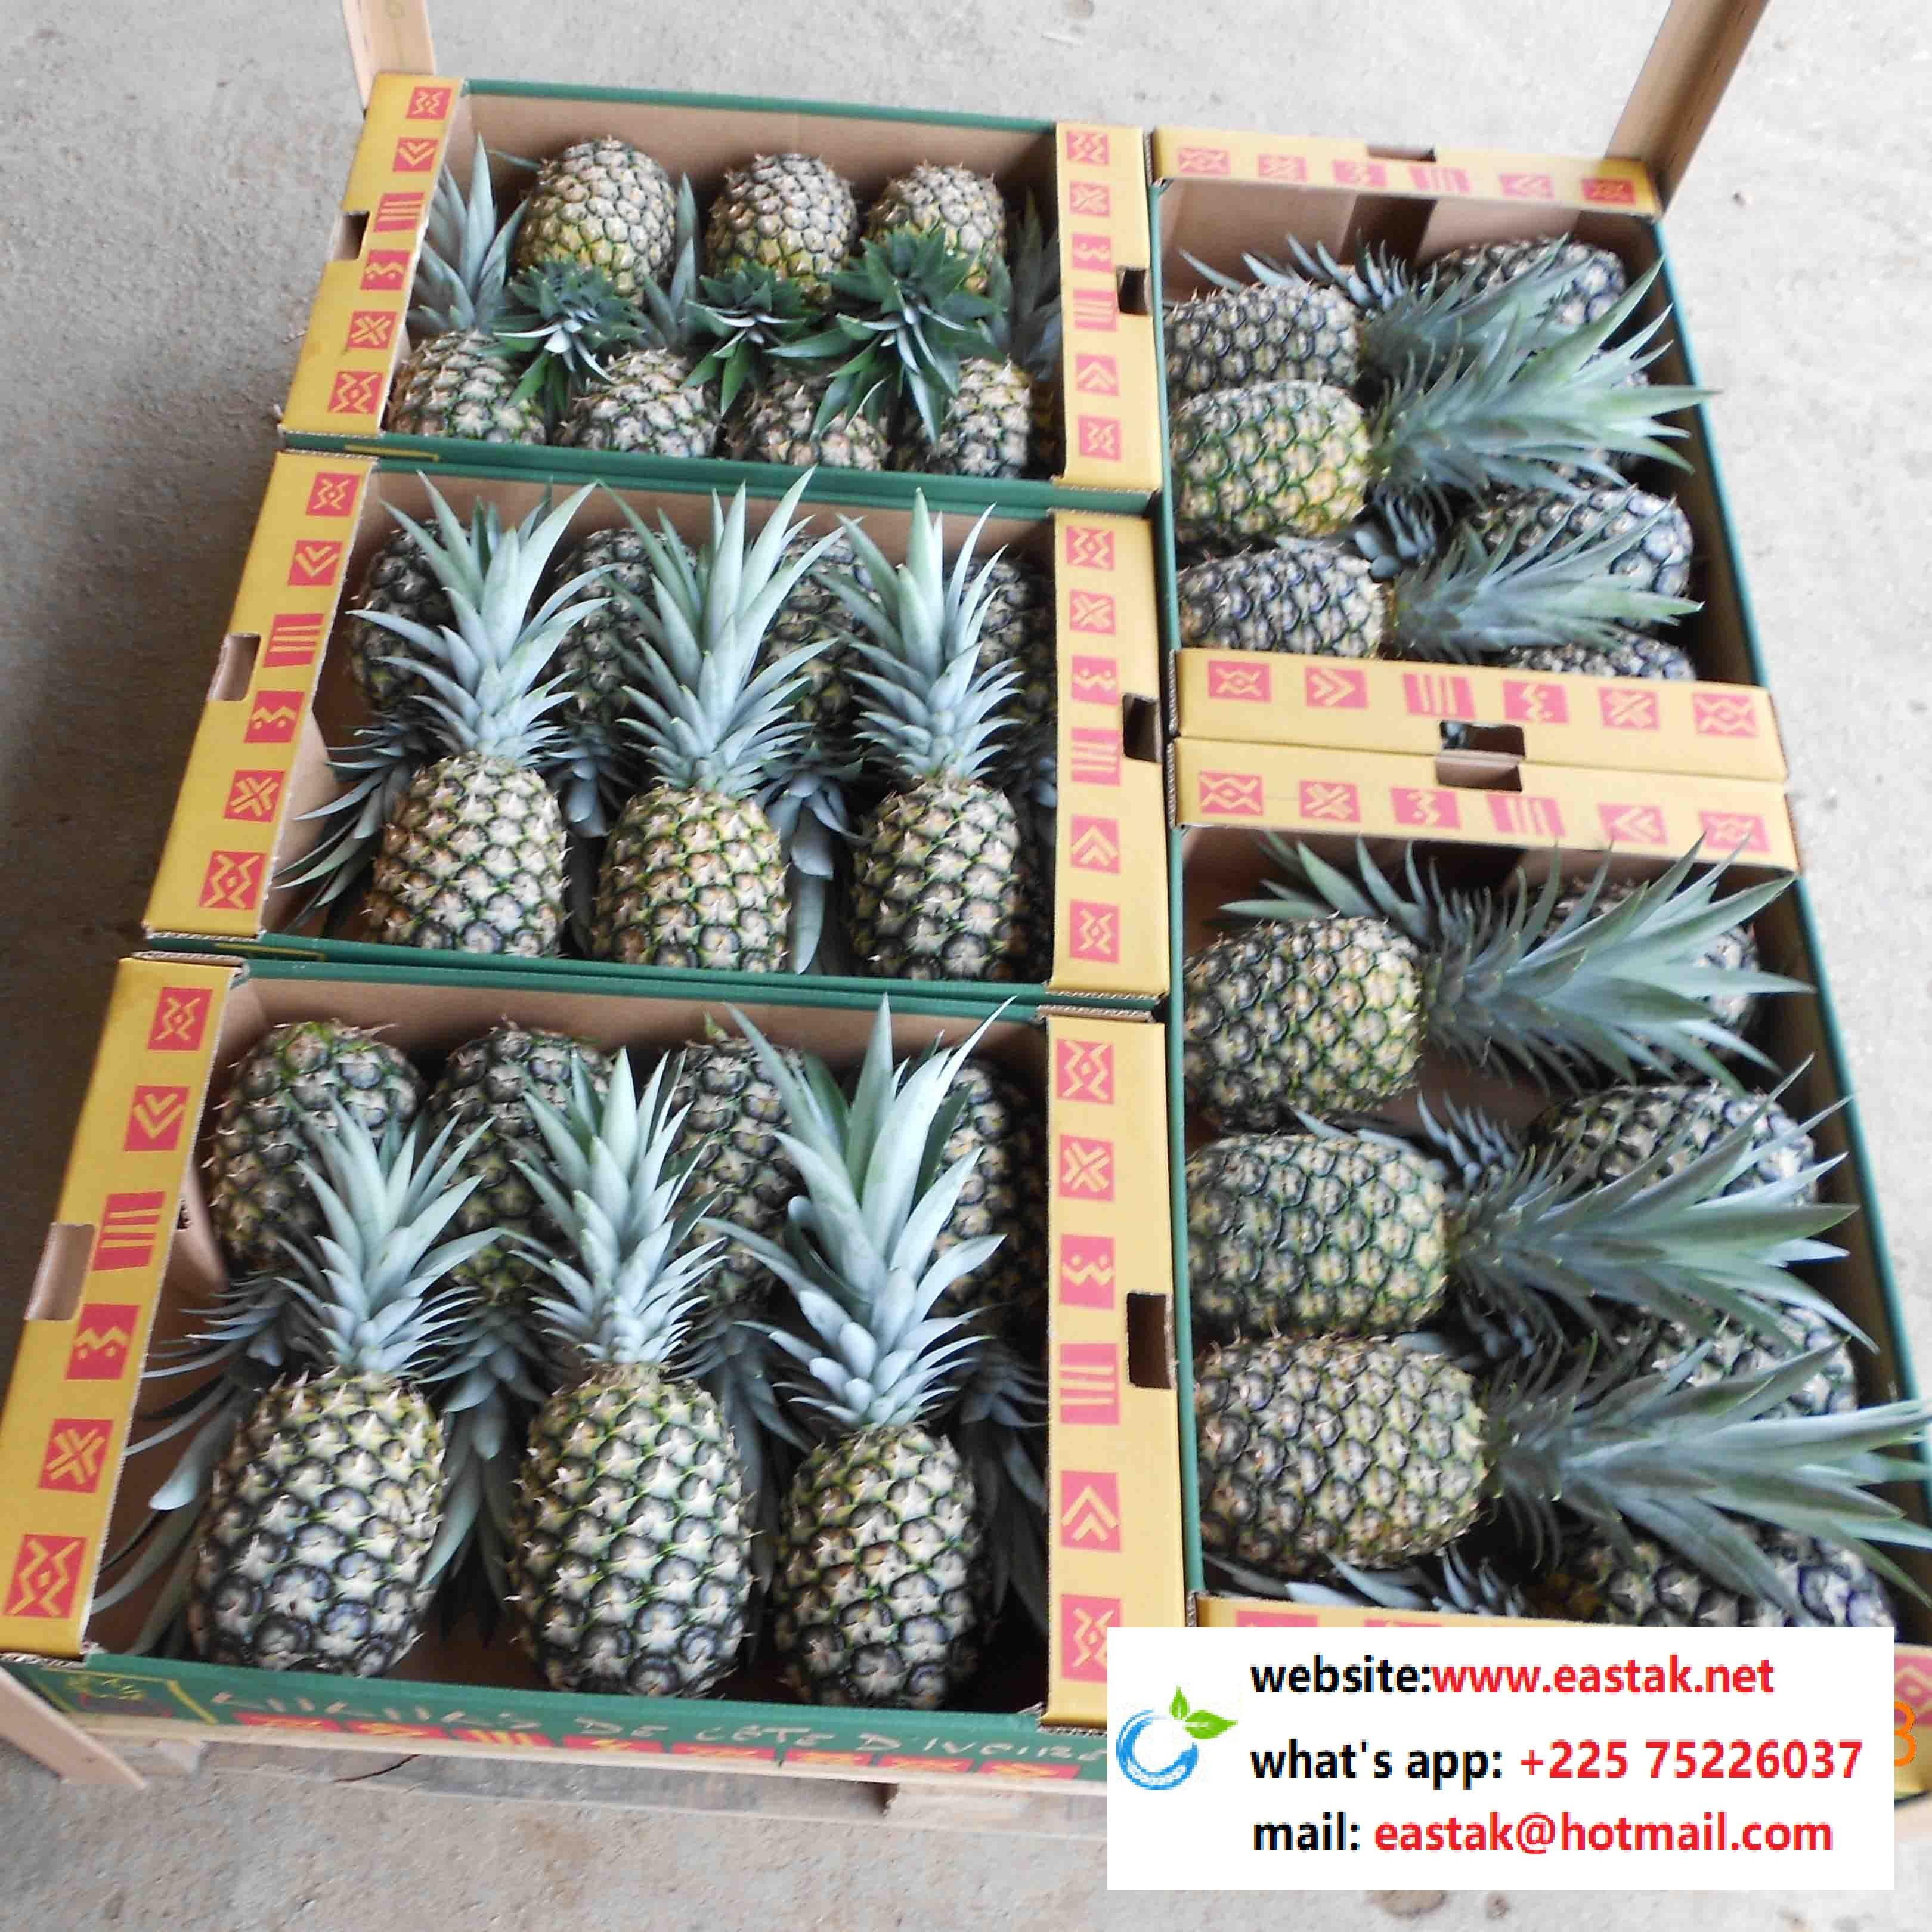 Low price organice pineapple from Africa- what's app:0022575226037